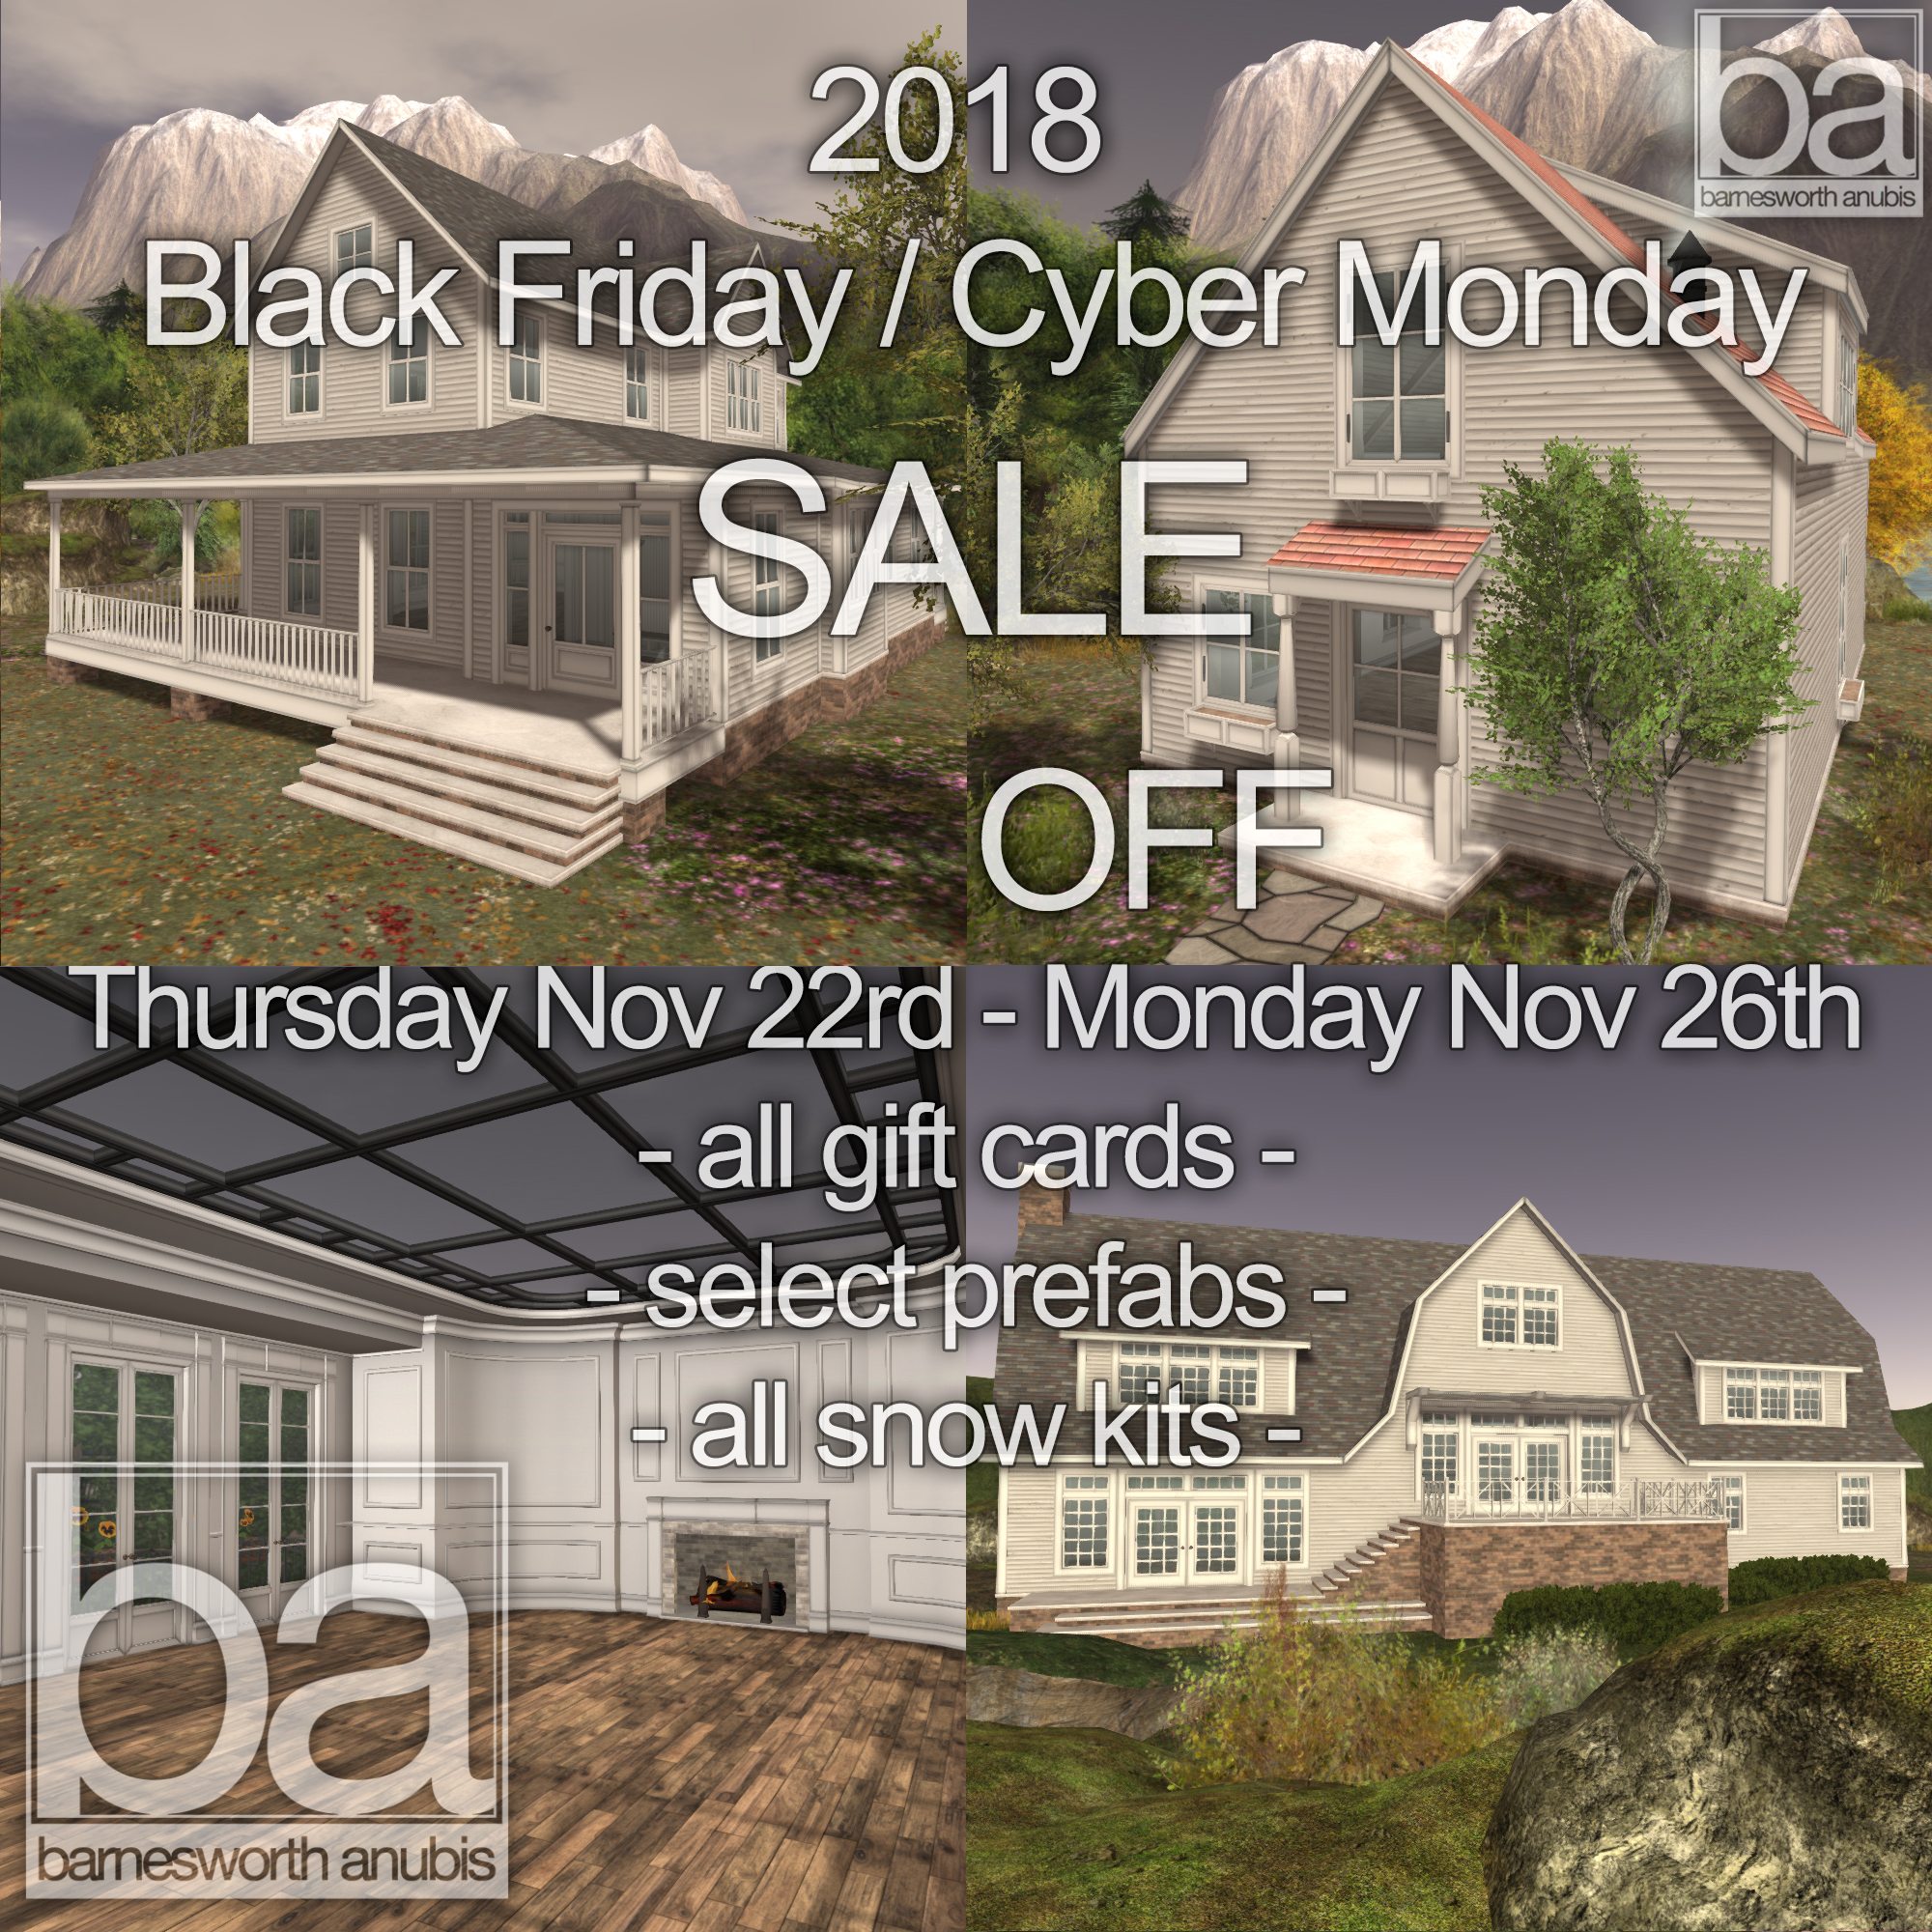 blackfriday2018.jpg